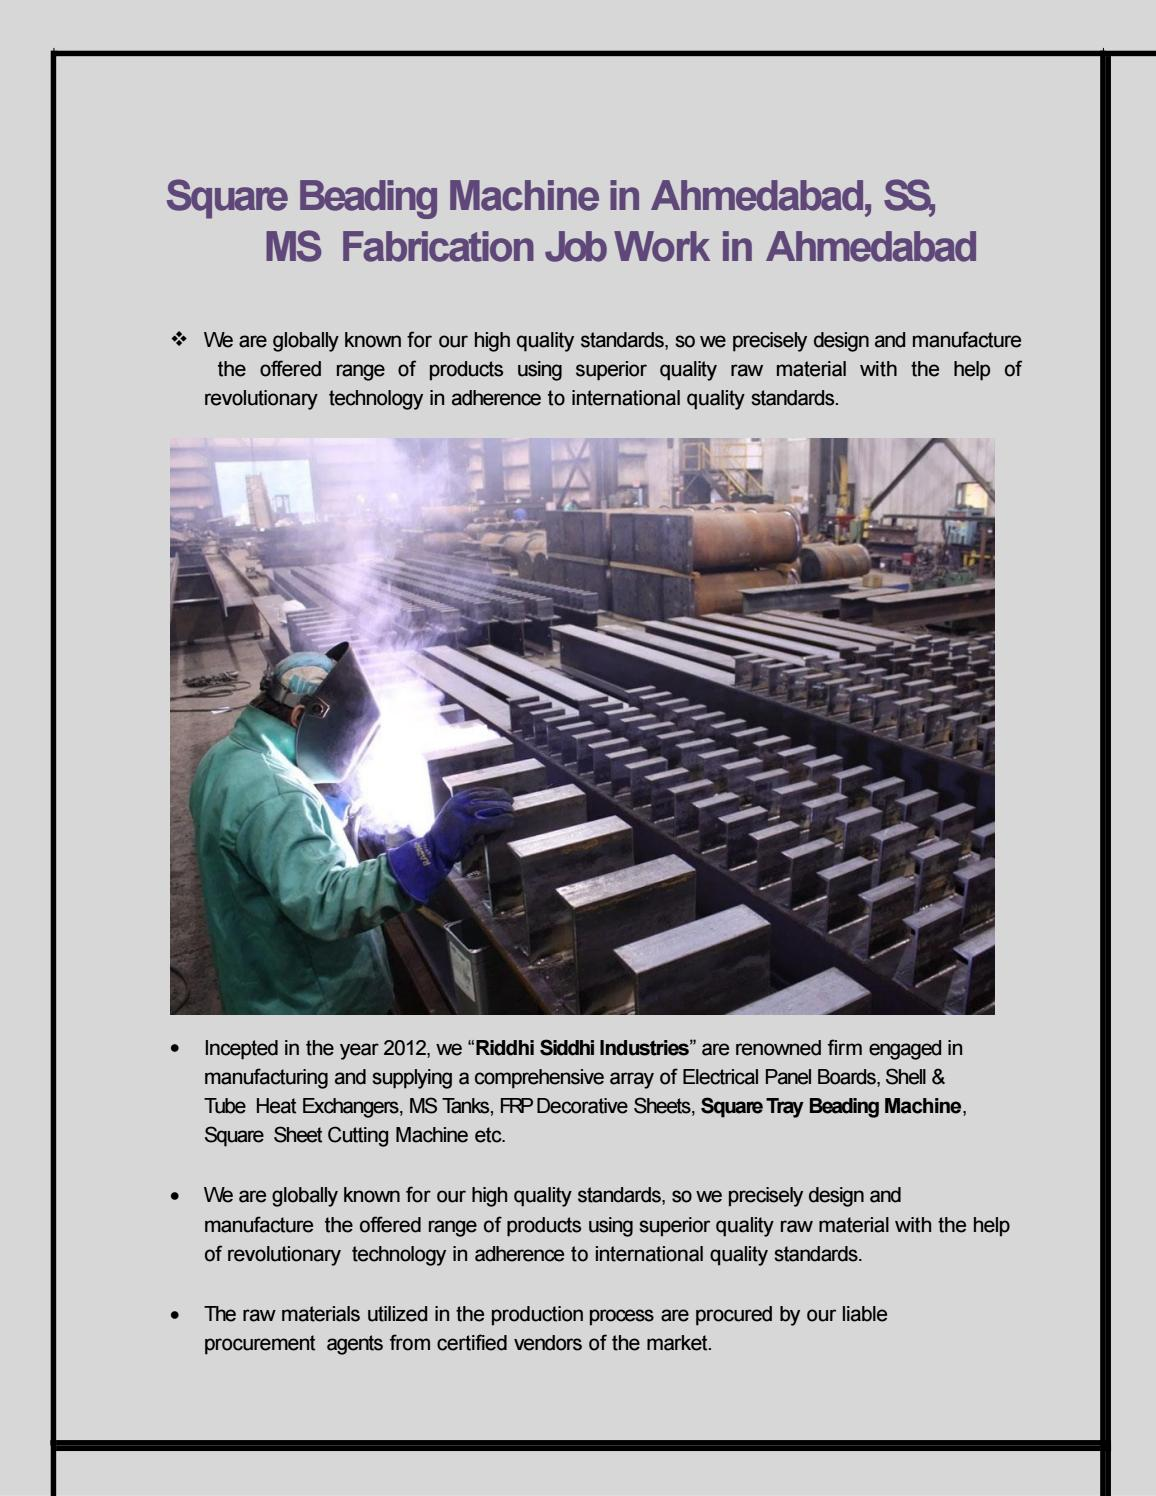 Square Beading Machine in Ahmedabad, SS, MS Fabrication Job Work in